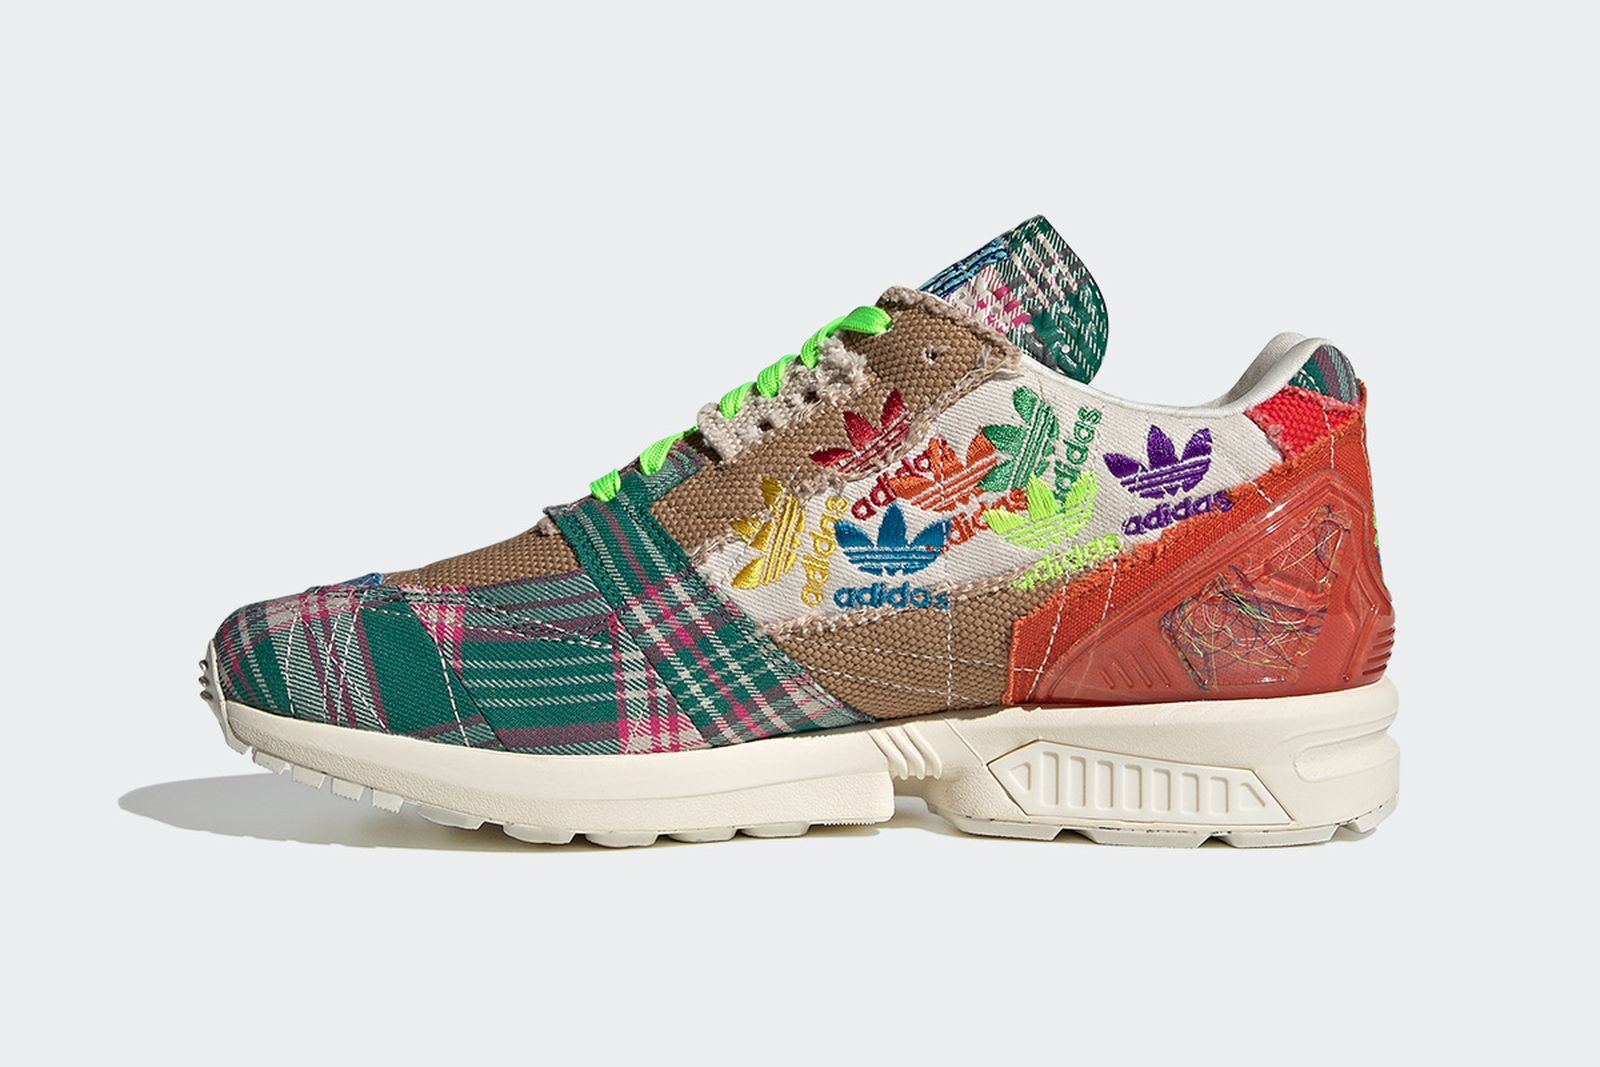 sean-wotherspoon-adidas-zx-8000-interview-06